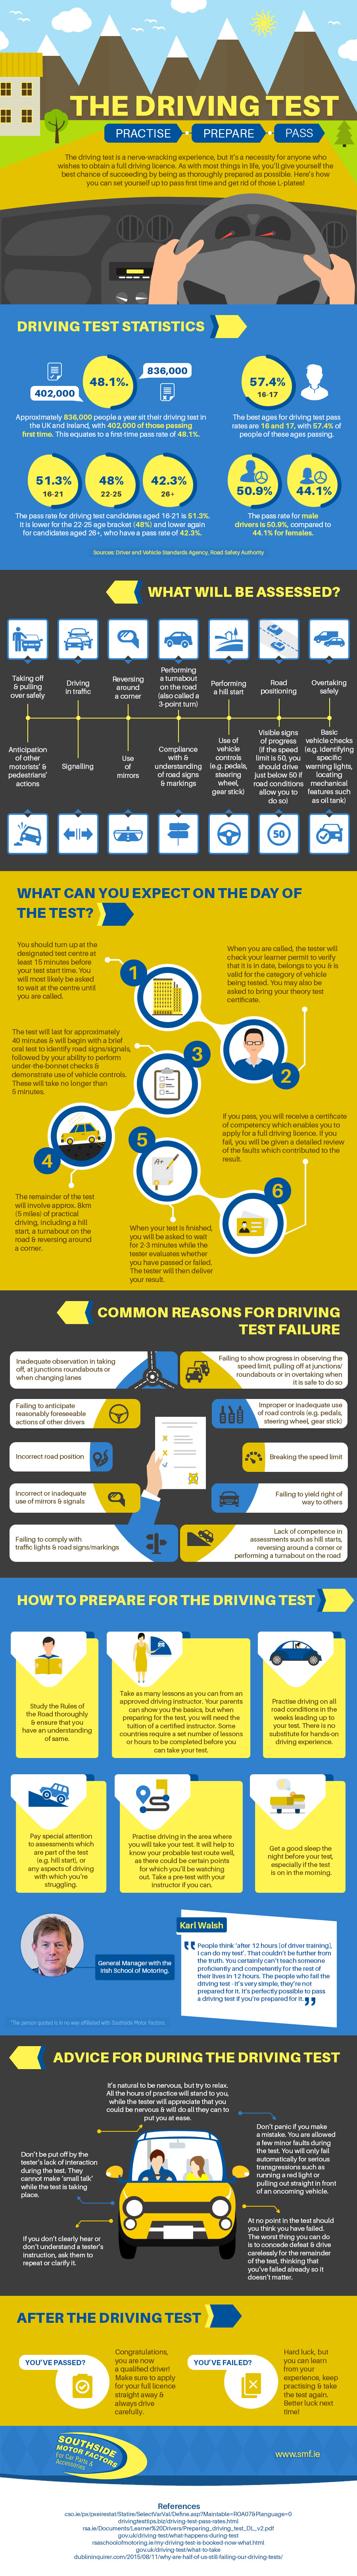 Your-Driving-Test-Practise-Prepare-Pass-Visual-asset